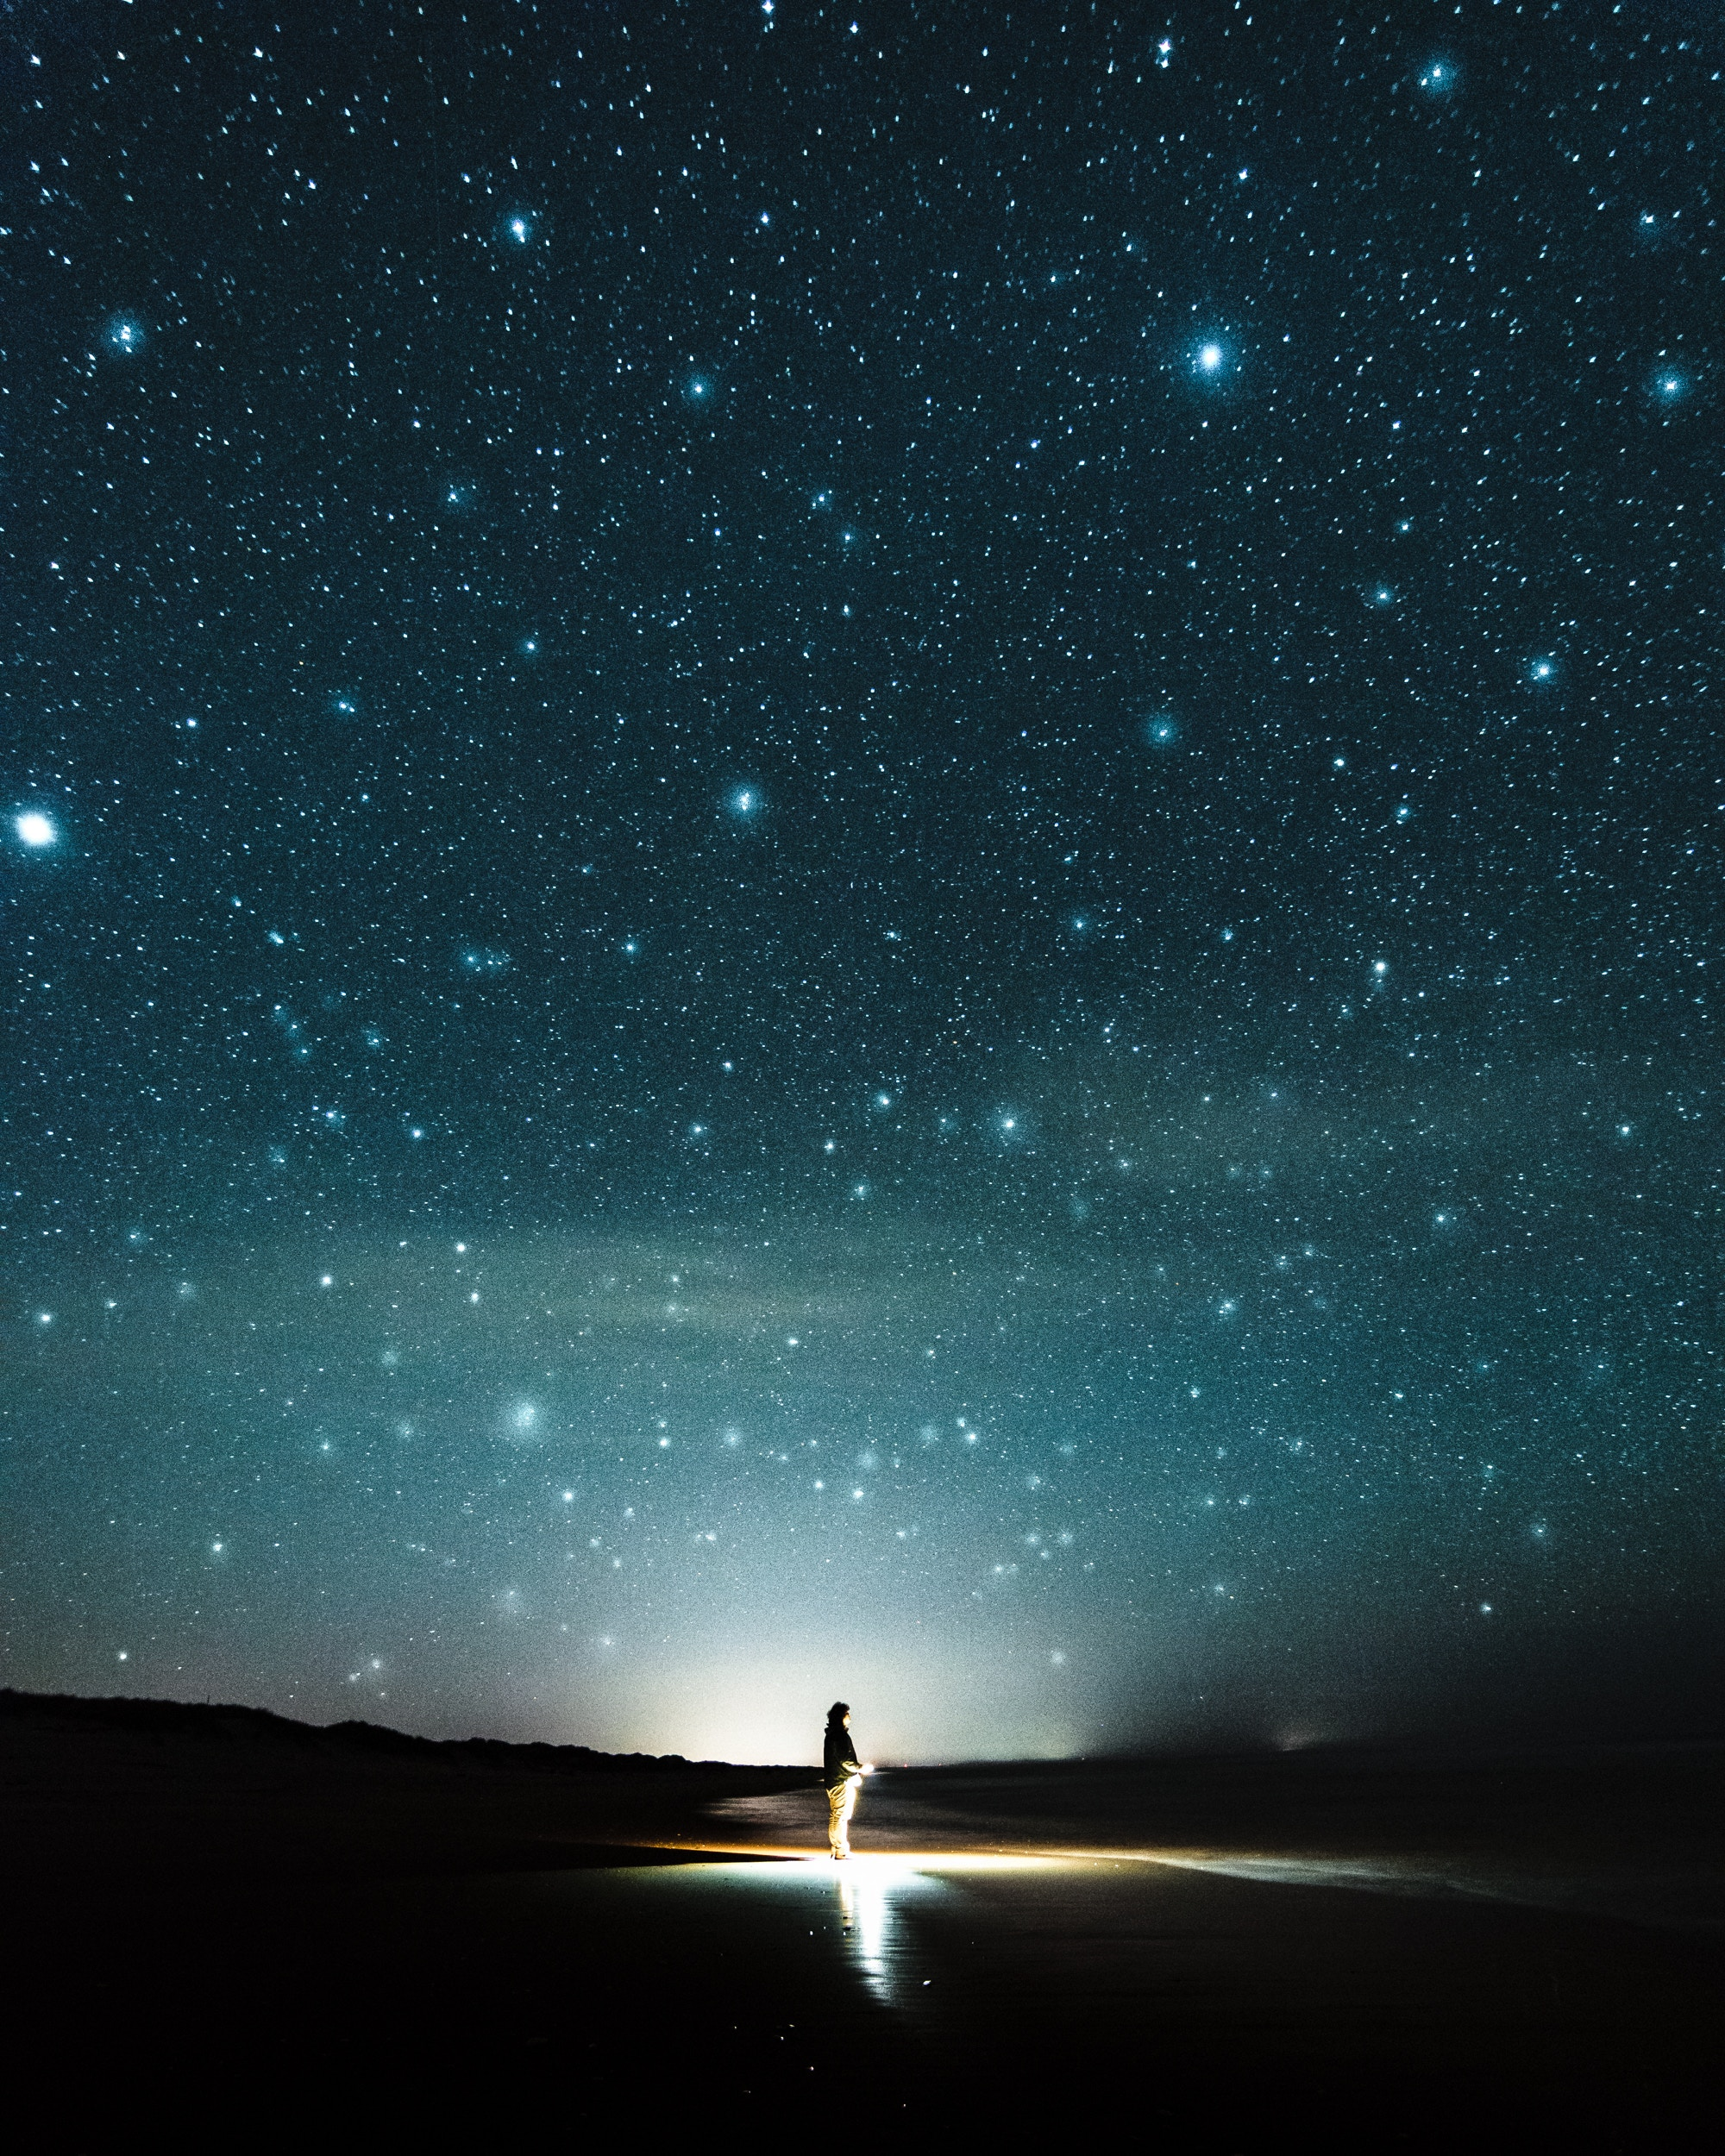 When Cancer Makes your Life Dark, Look for the Stars. Photo by Eidy Bambang-Sunaryo on Unsplash